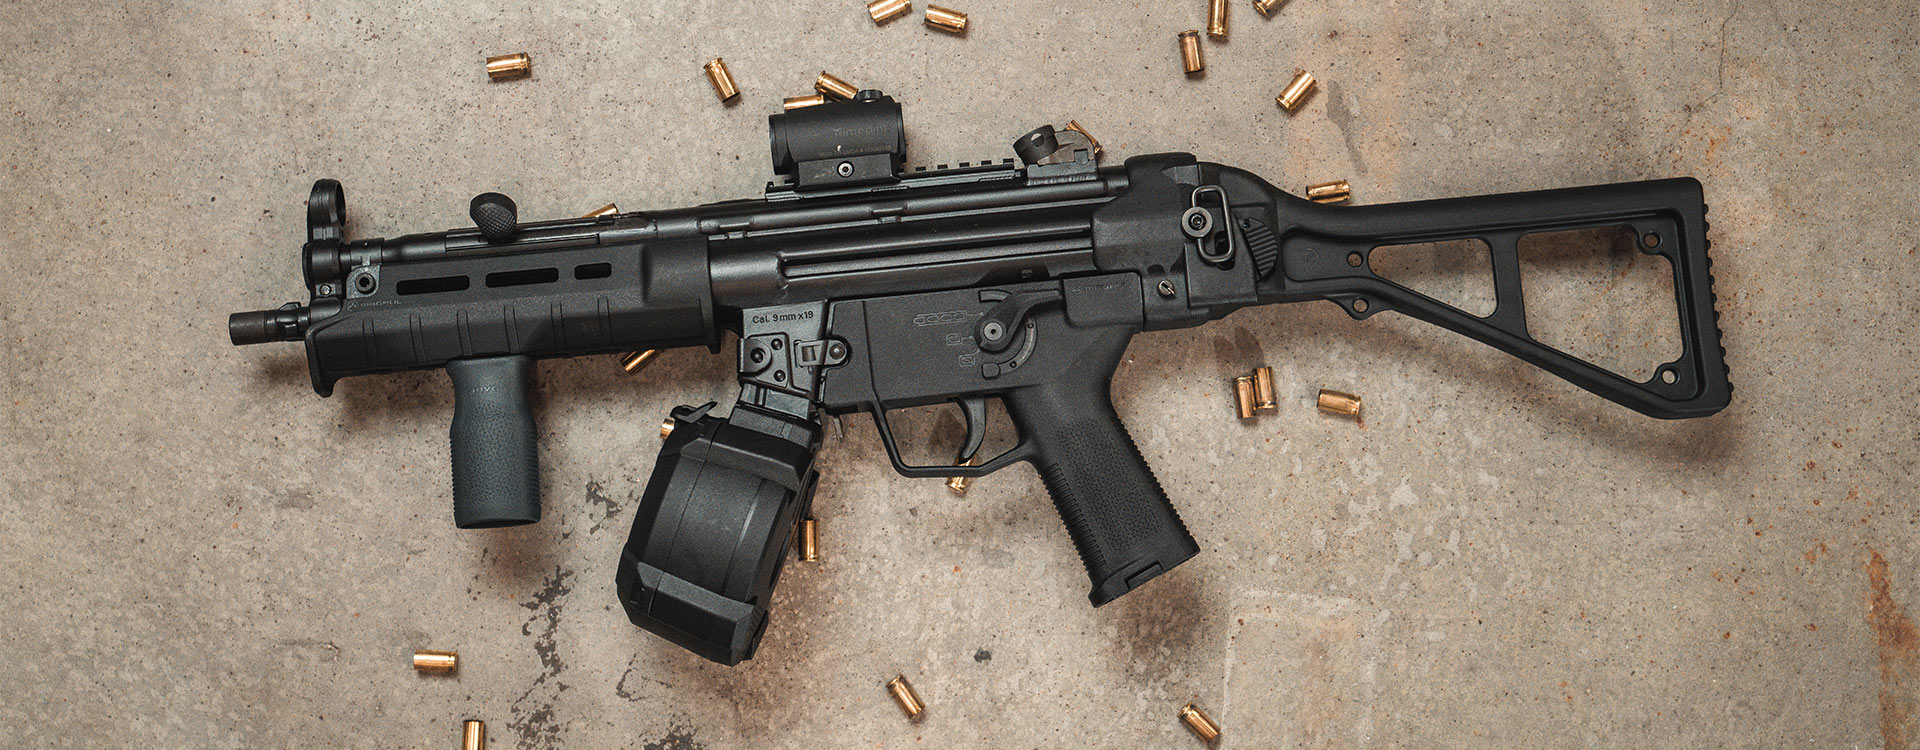 Magpul PMAG D-50 MP in MP5 clone with Magpul SL Hand Guard, SL Grip Module, ESK Selector, and M-LOK MVG